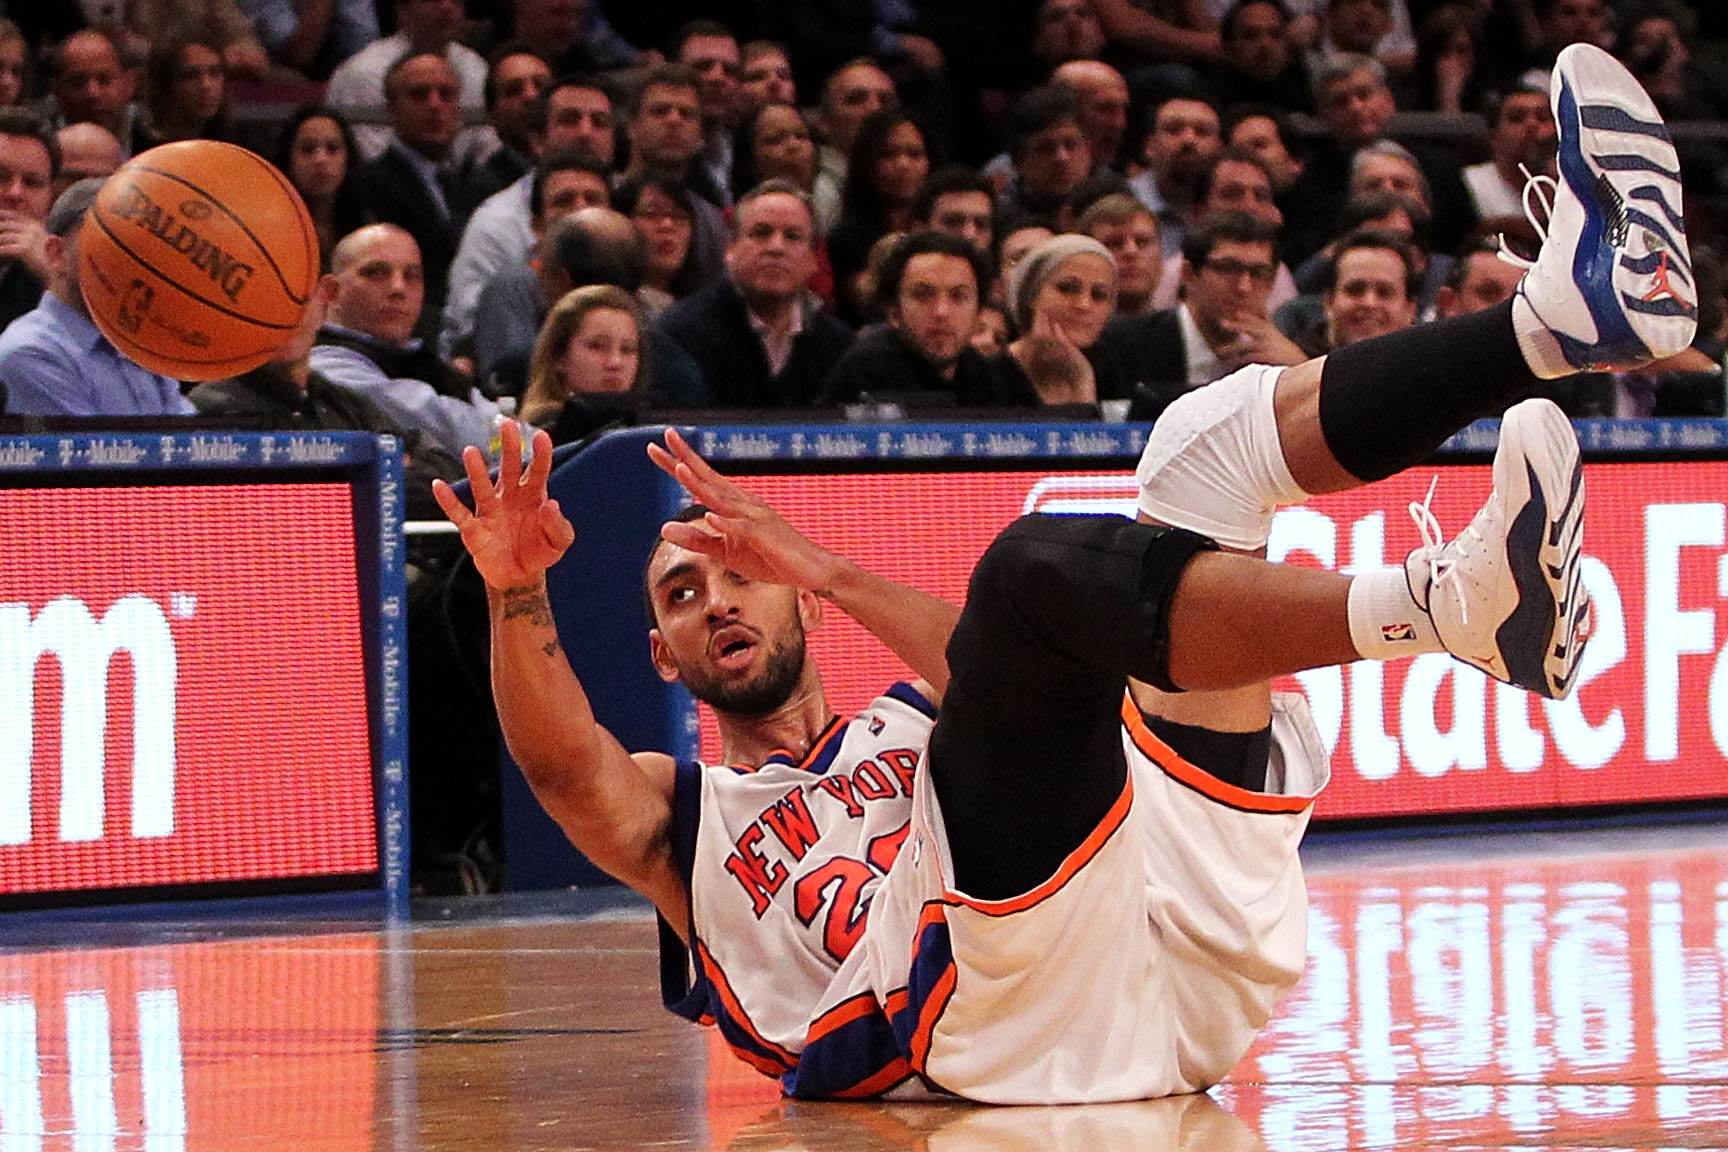 NEW YORK - FEBRUARY 03:  Jared Jeffries #20 of the New York Knicks scoops up a lose ball against the Washington Wizards at Madison Square Garden February 3, 2010 in New York City. NOTE TO USER: User expressly acknowledges and agrees that, by downloading a